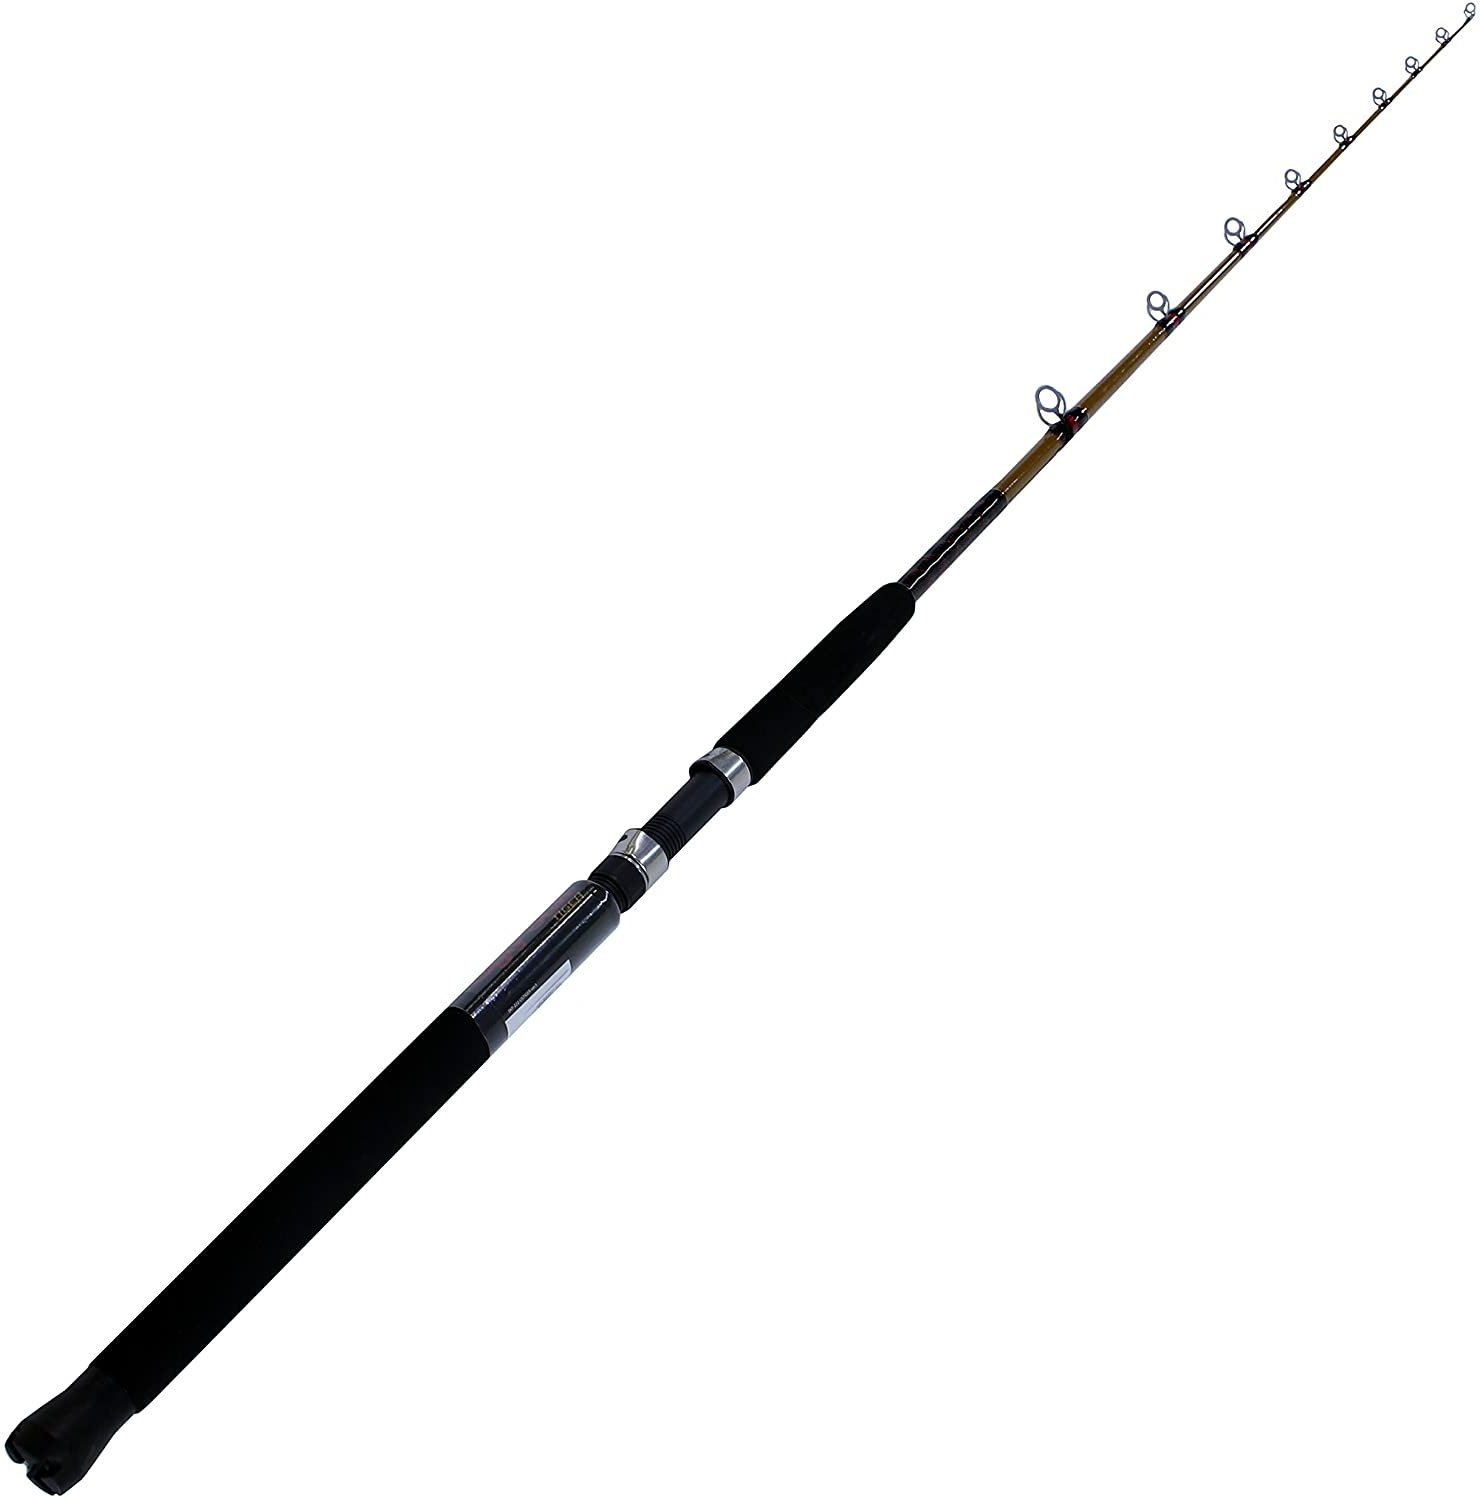 Ugly Stik Tiger Rod for Bass Fishing